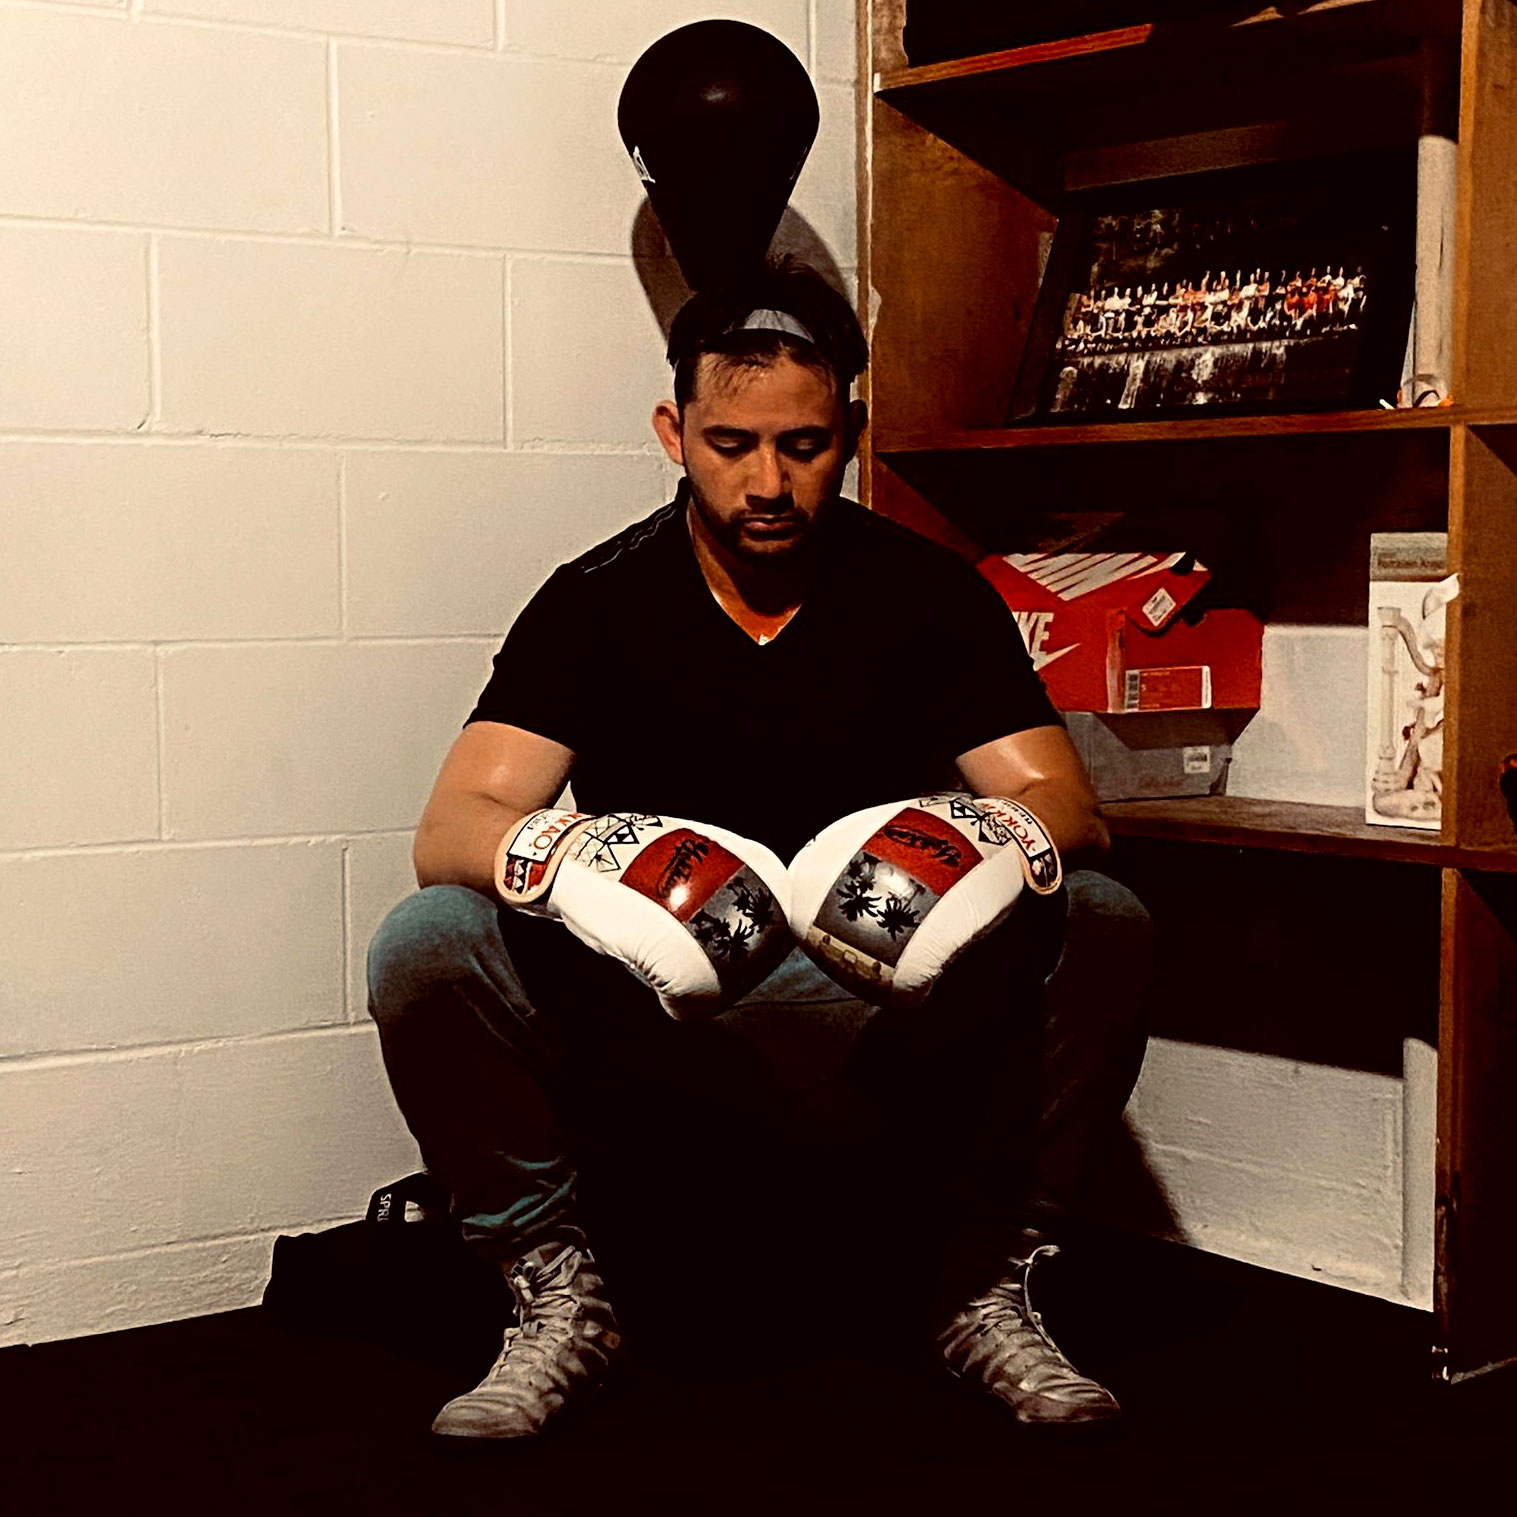 Man sitting in a corner and wearing boxing gloves